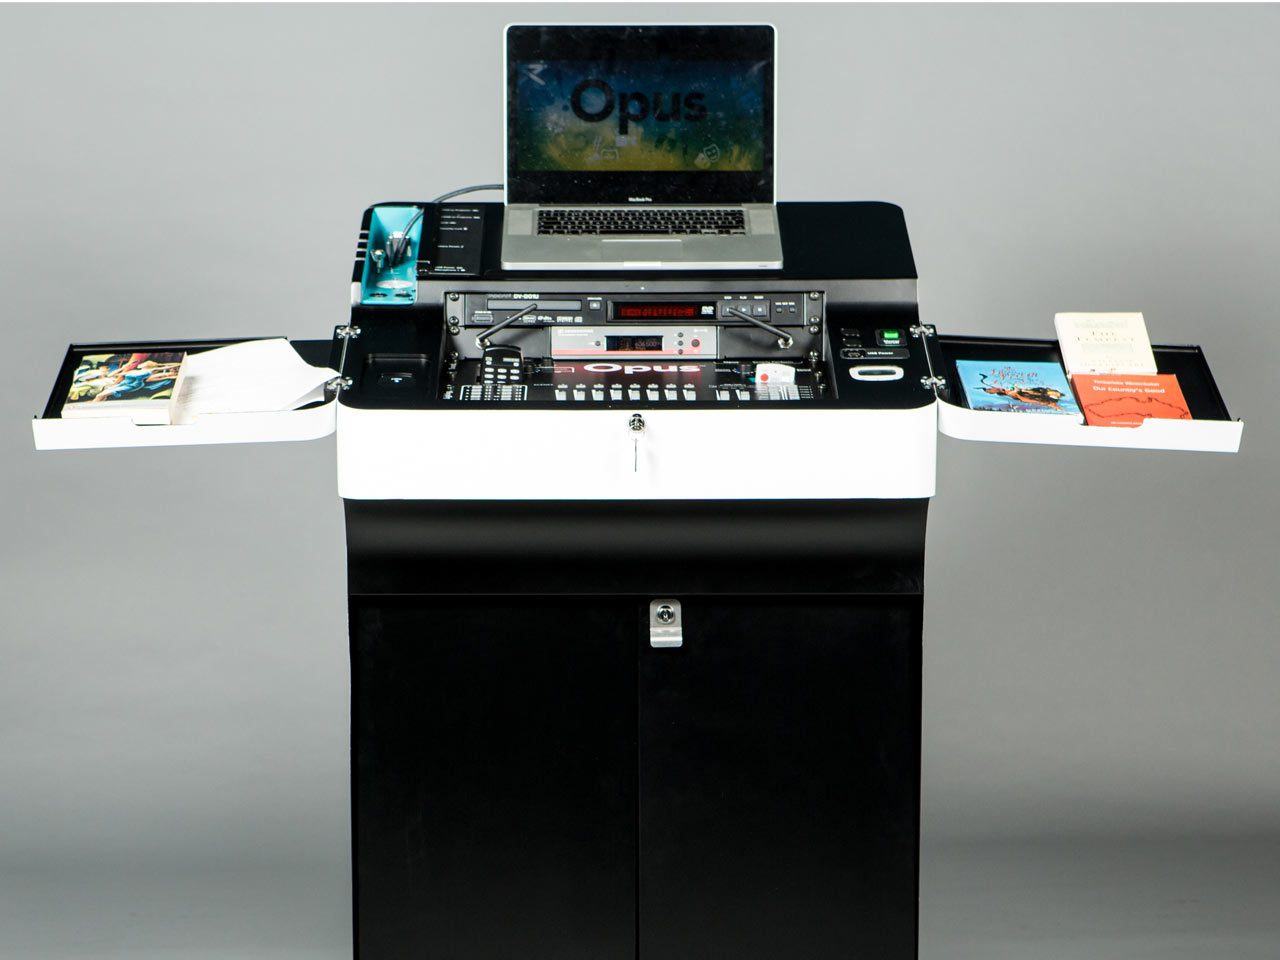 OpusSystem central console